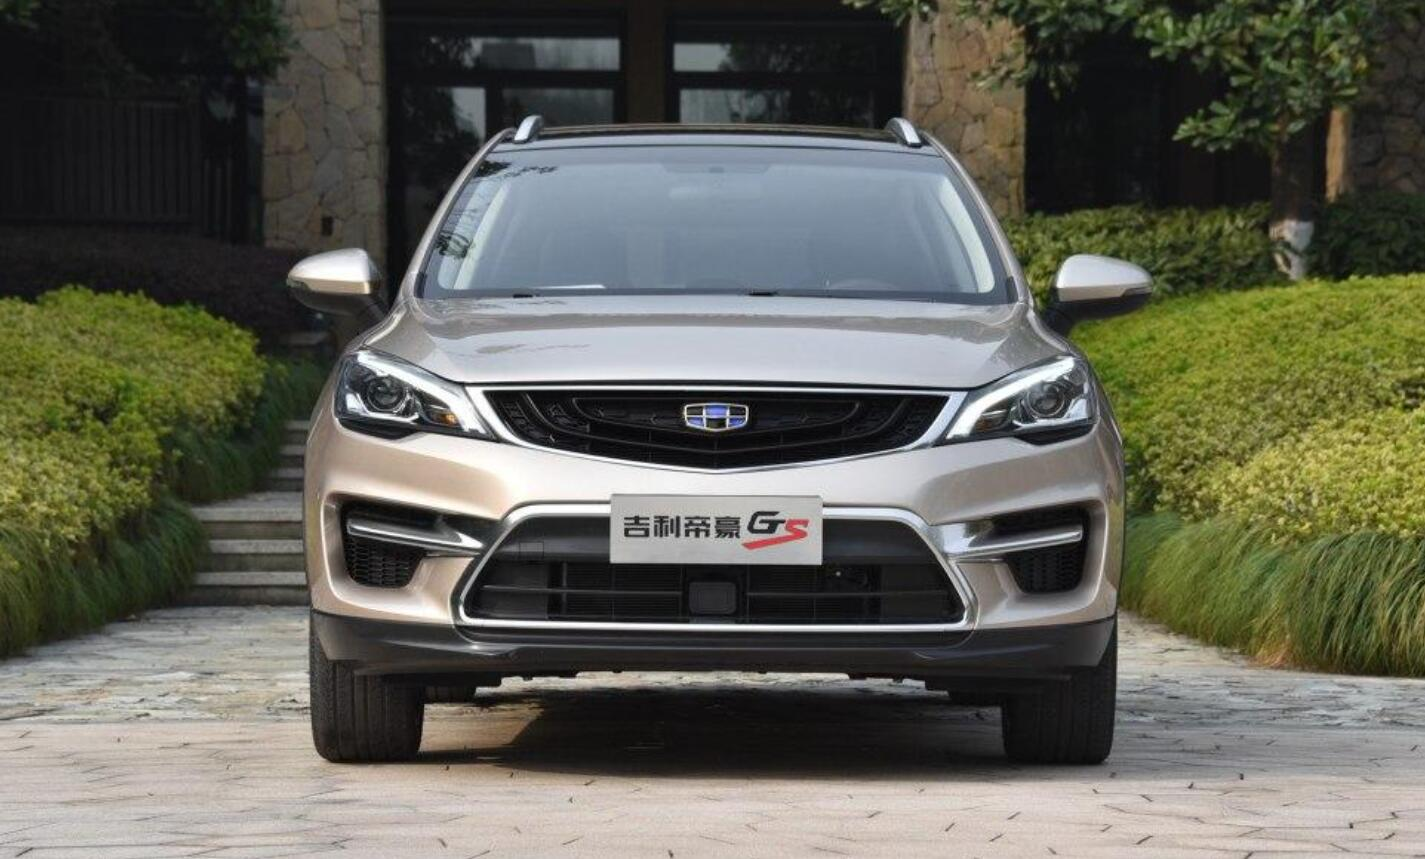 Geely plans to launch new EV brand Zeekr to Target Tesla-CnEVPost